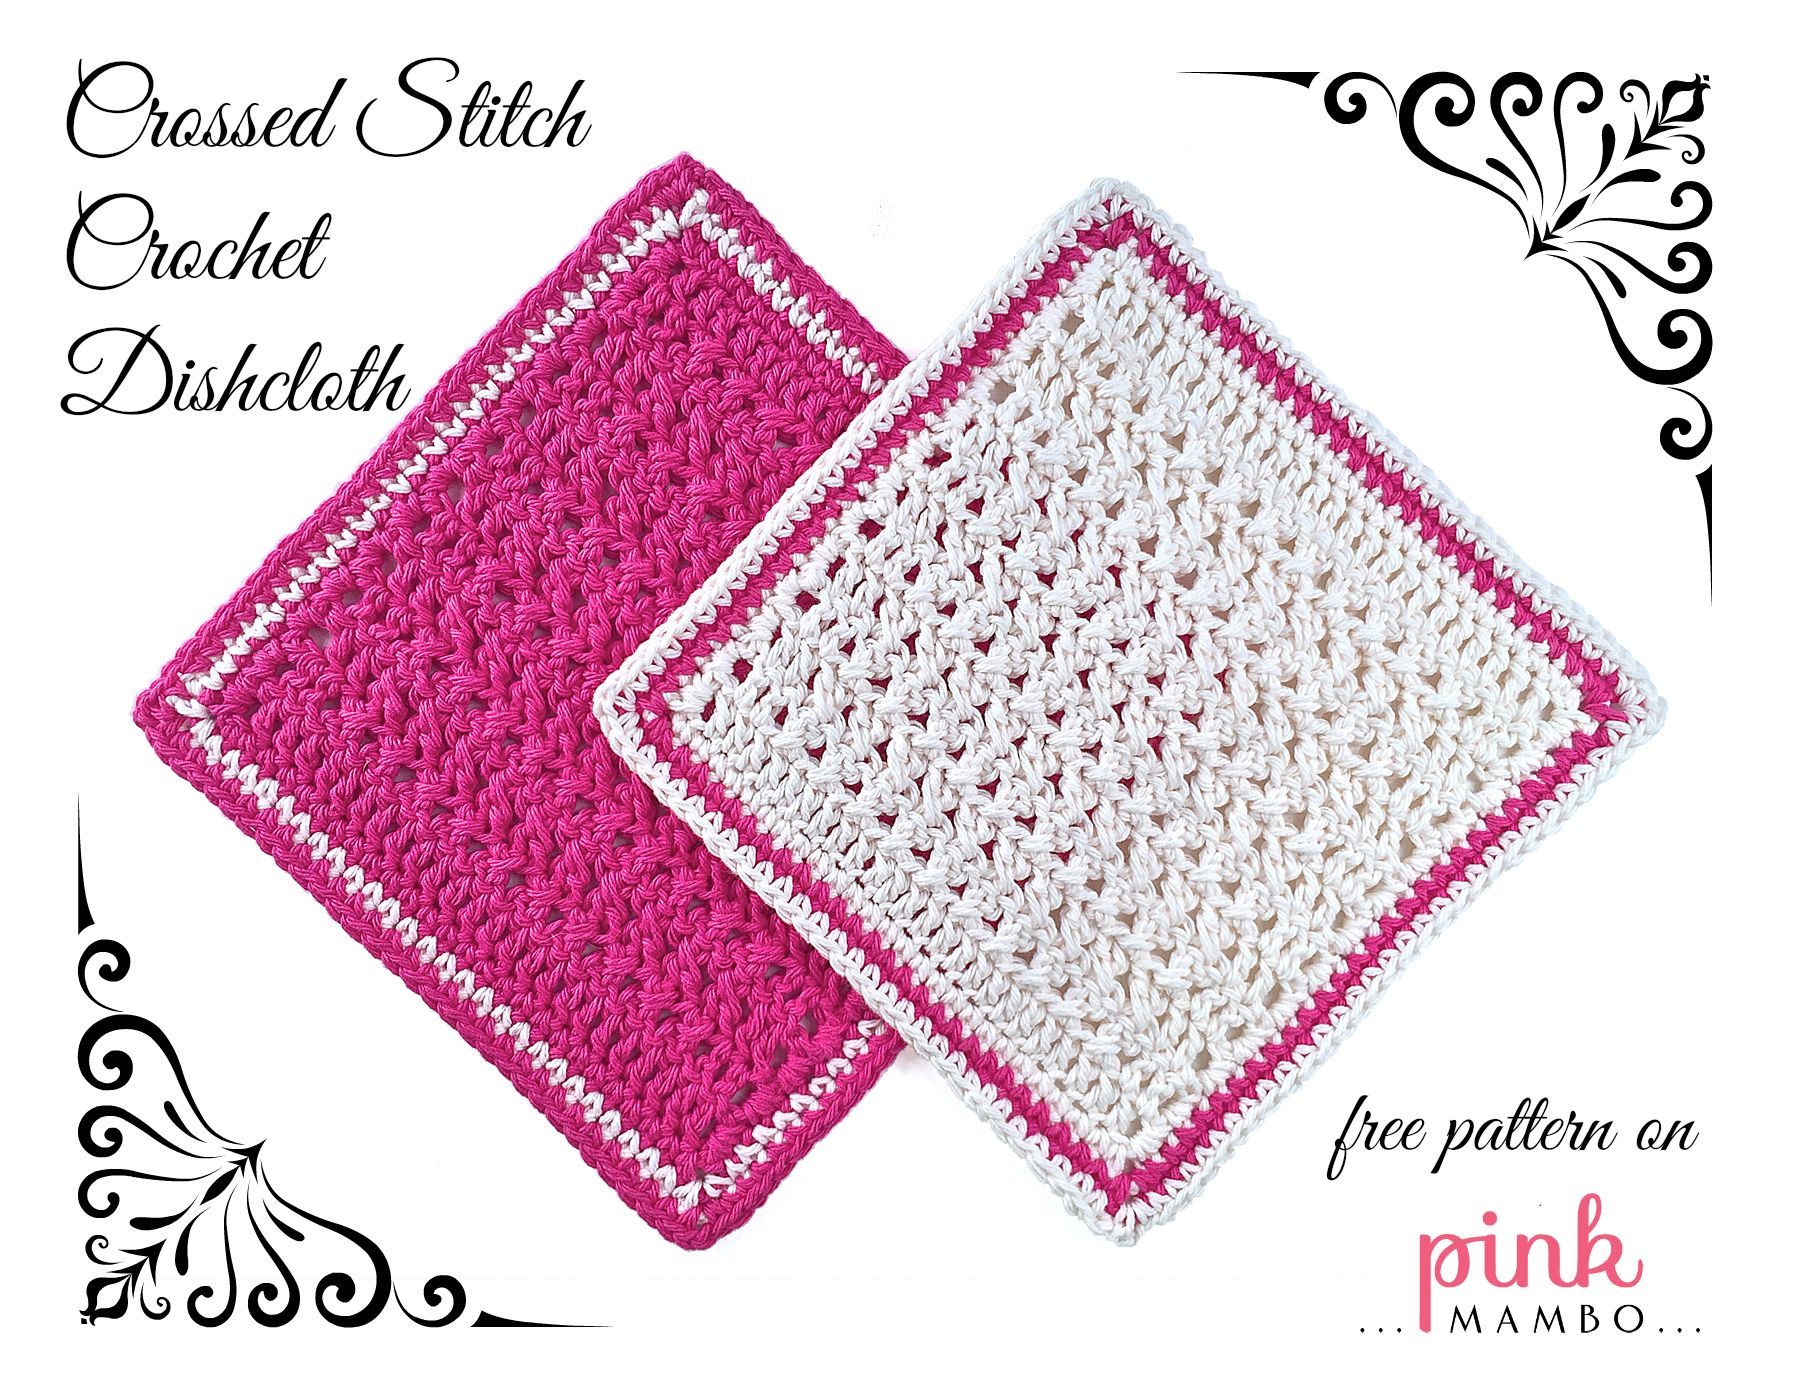 Pink and White Crossed Stitch Crochet Dishcloths | Crochet ...